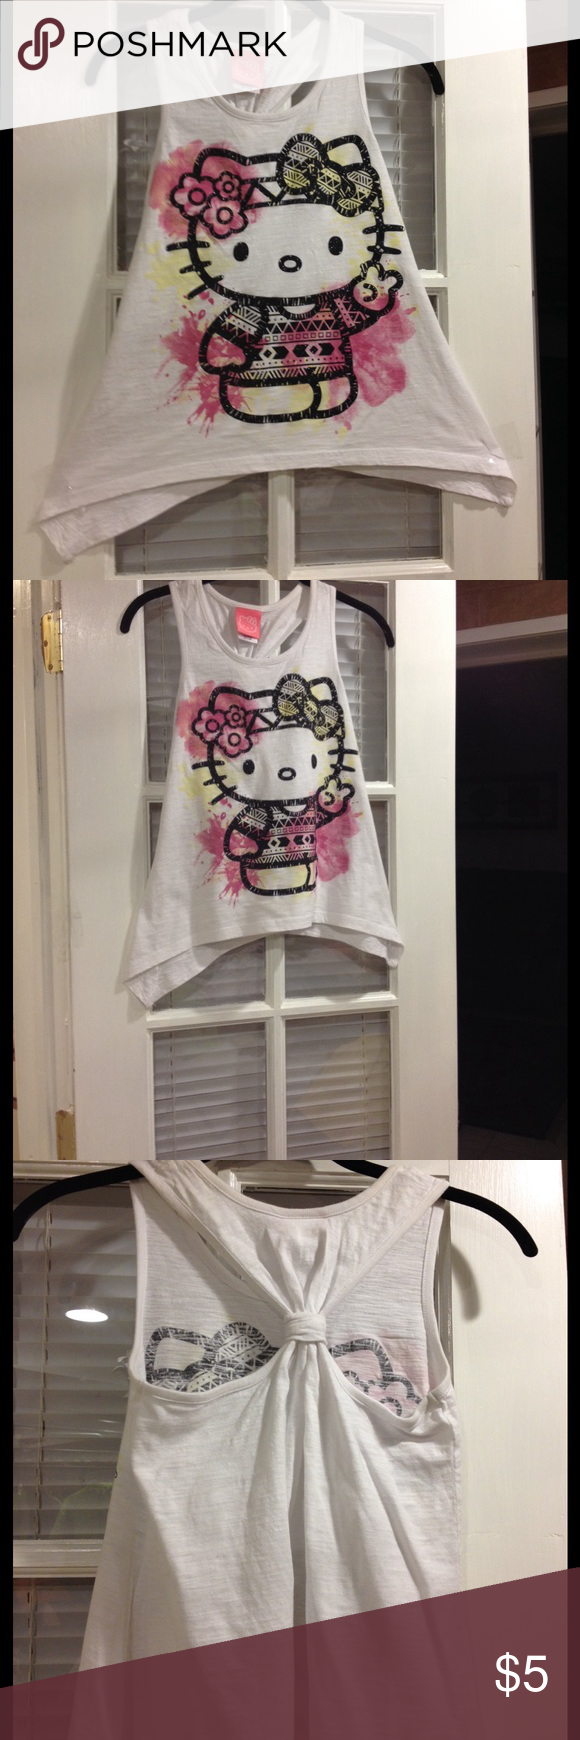 Large (10-12) Hello Kitty top good condition Large (10-12)Hello Kitty top good condition Hello Kitty Shirts & Tops Tank Tops